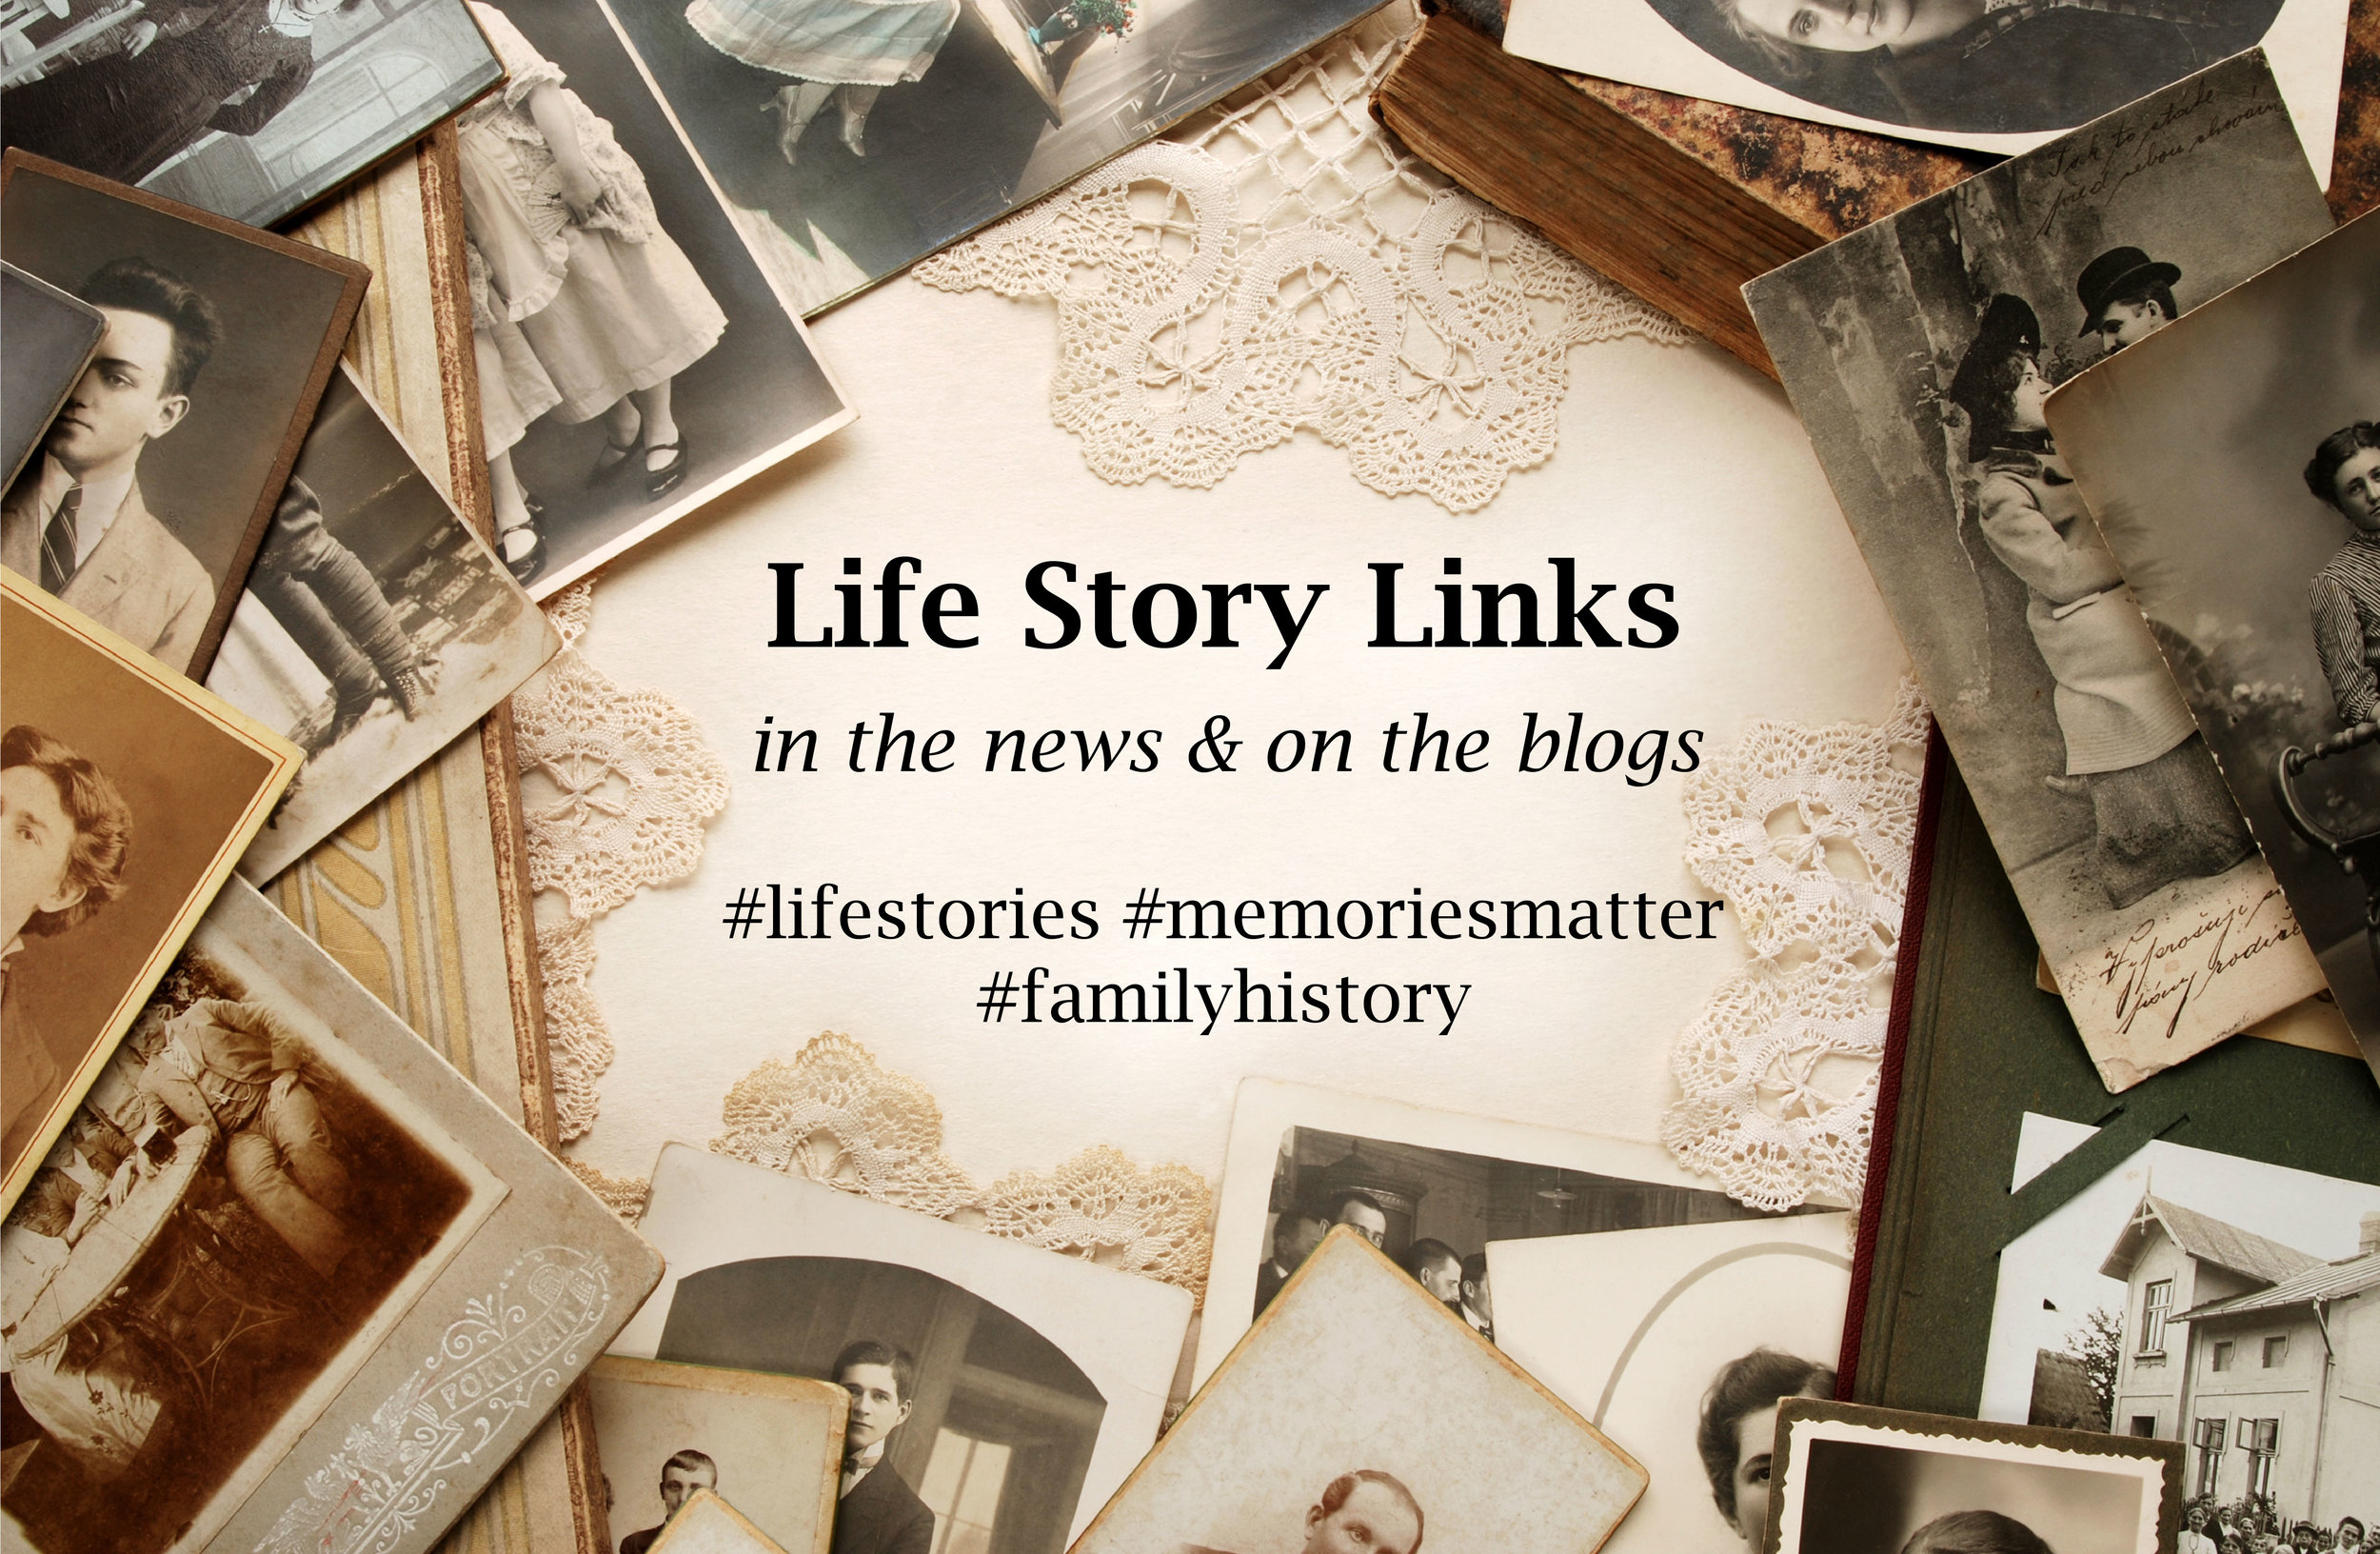 curated links to blogs and articles of interest to personal historians and family biographers